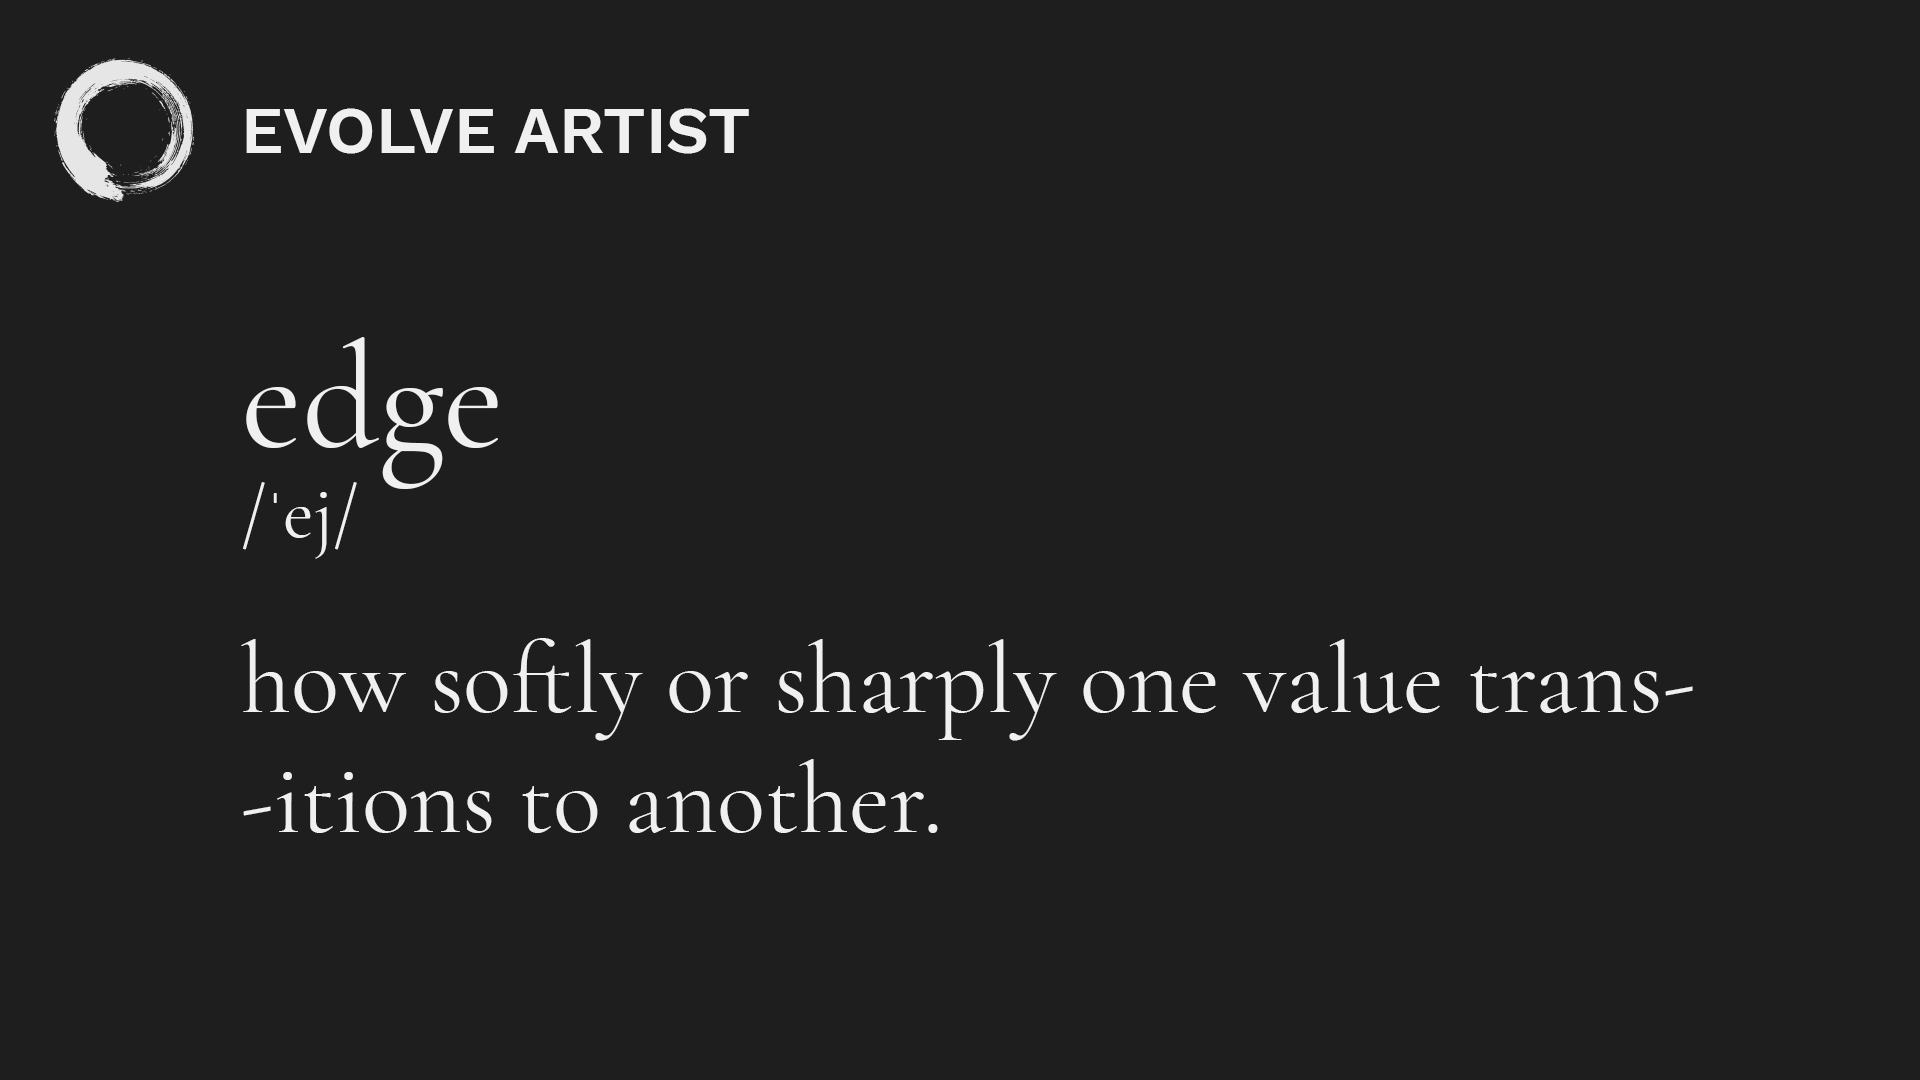 Edges in art are determined by how softly or sharply one value transitions into another.